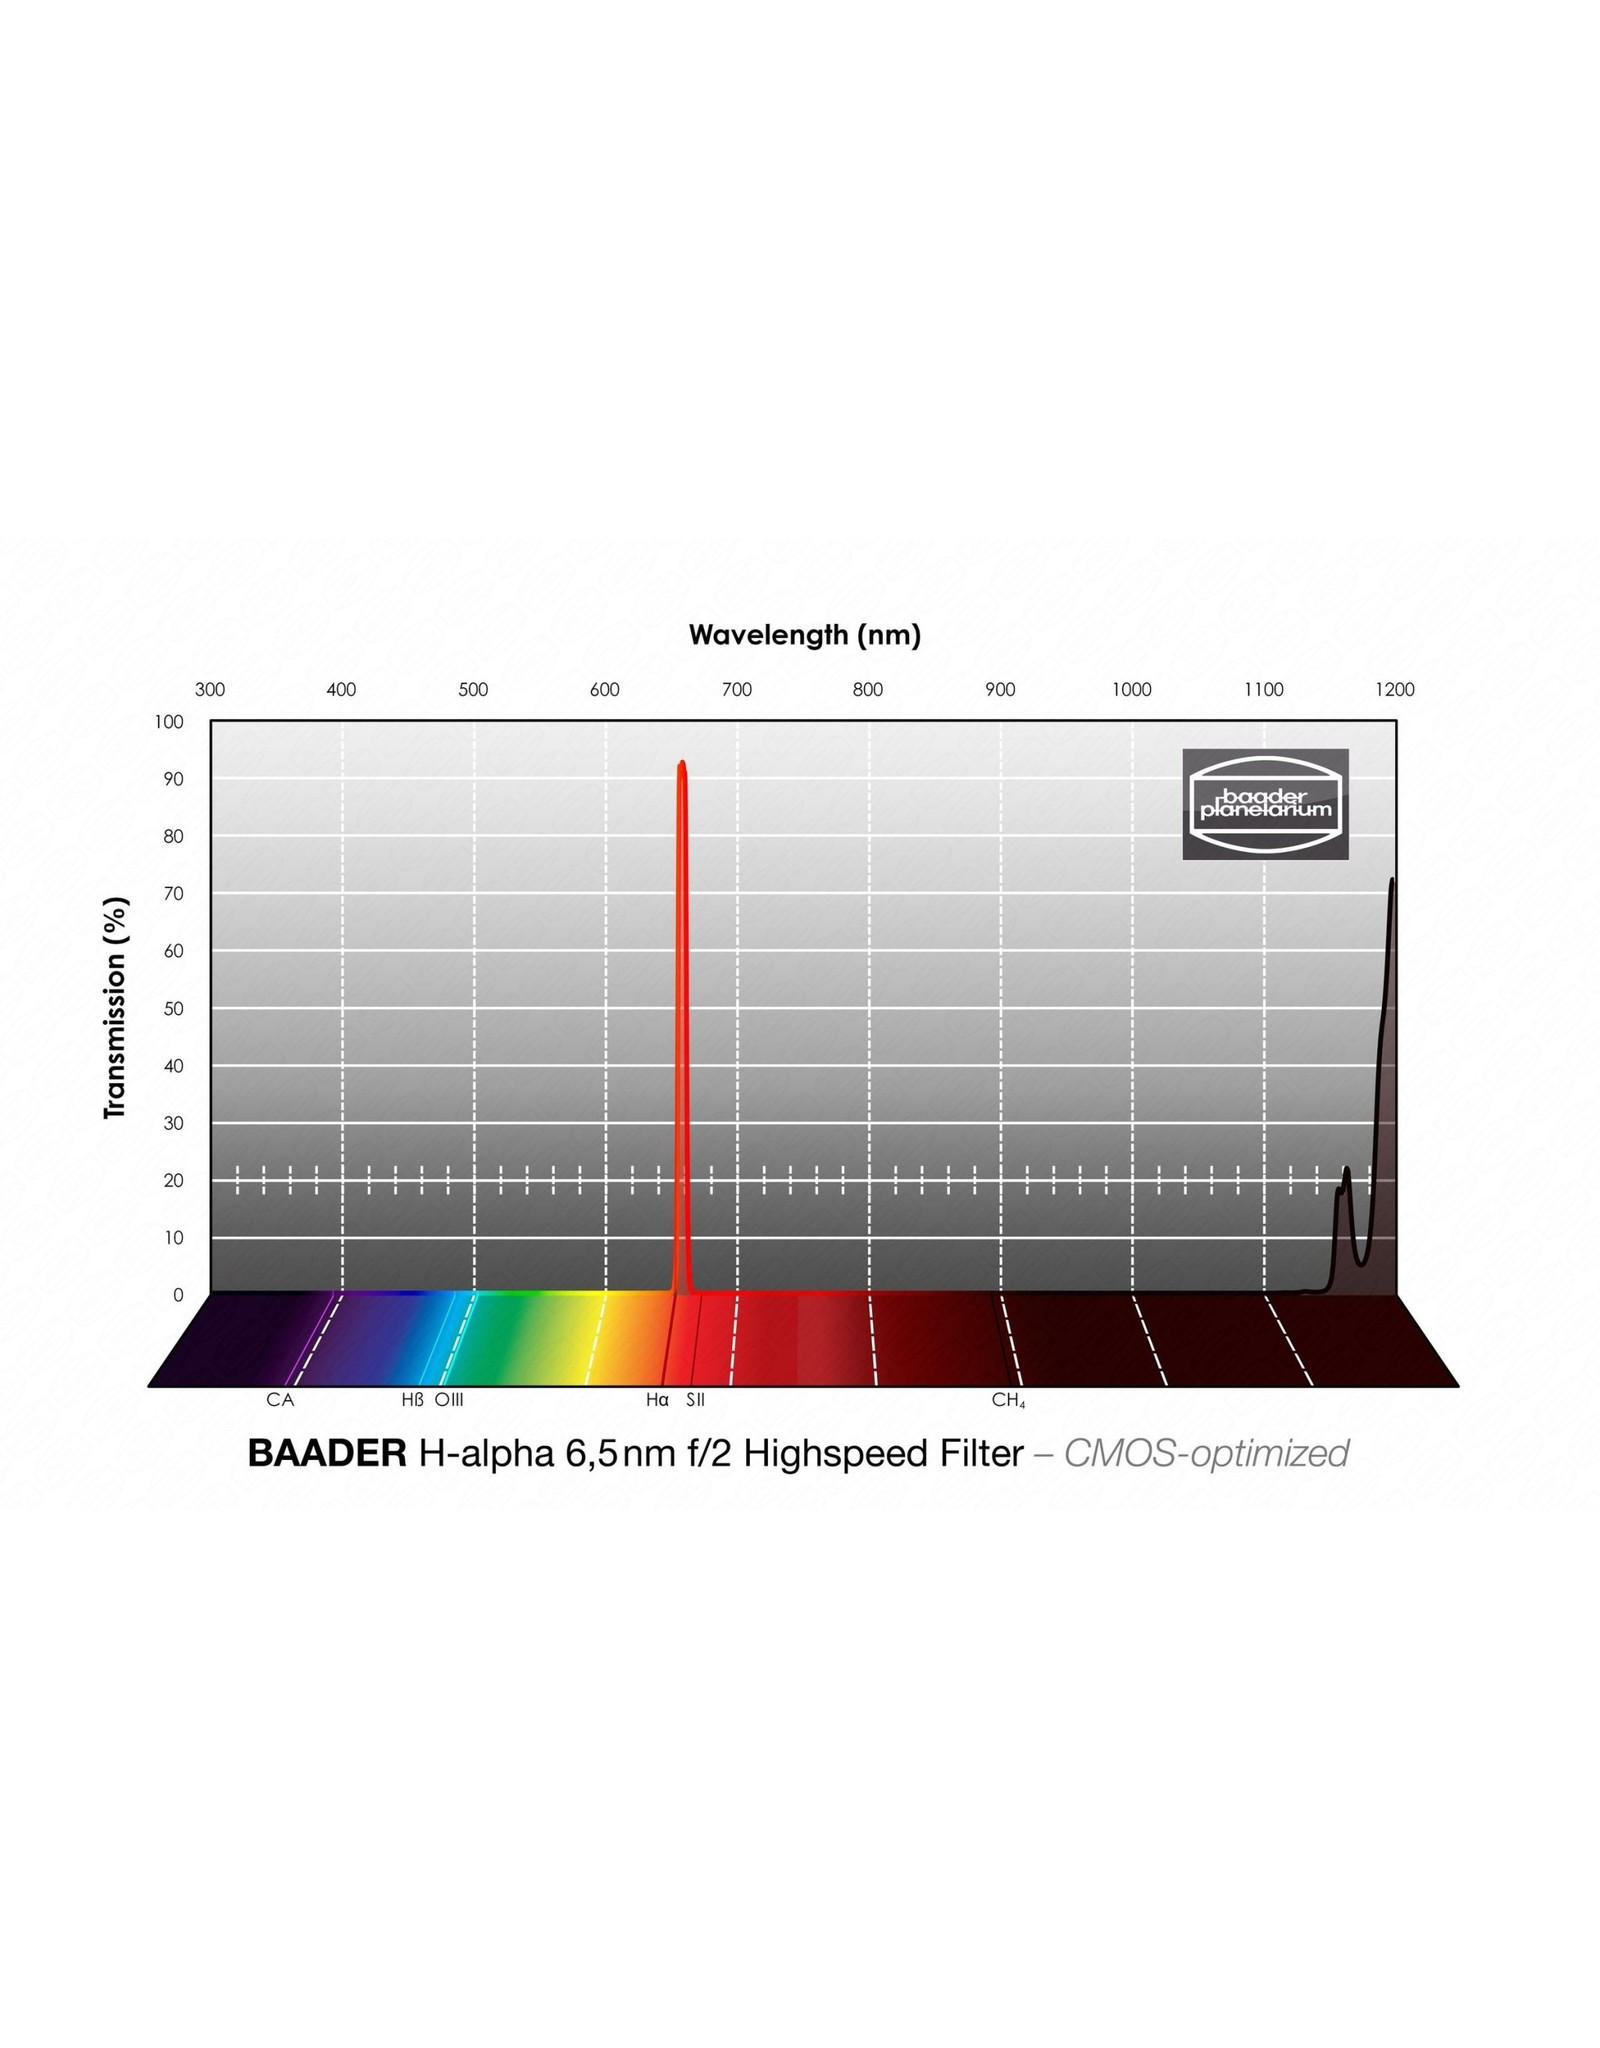 Baader Planetarium Baader 6.5nm f/2 Highspeed Filter set – CMOS-optimized - H-alpha, O-III, S-11 (Specify Size)